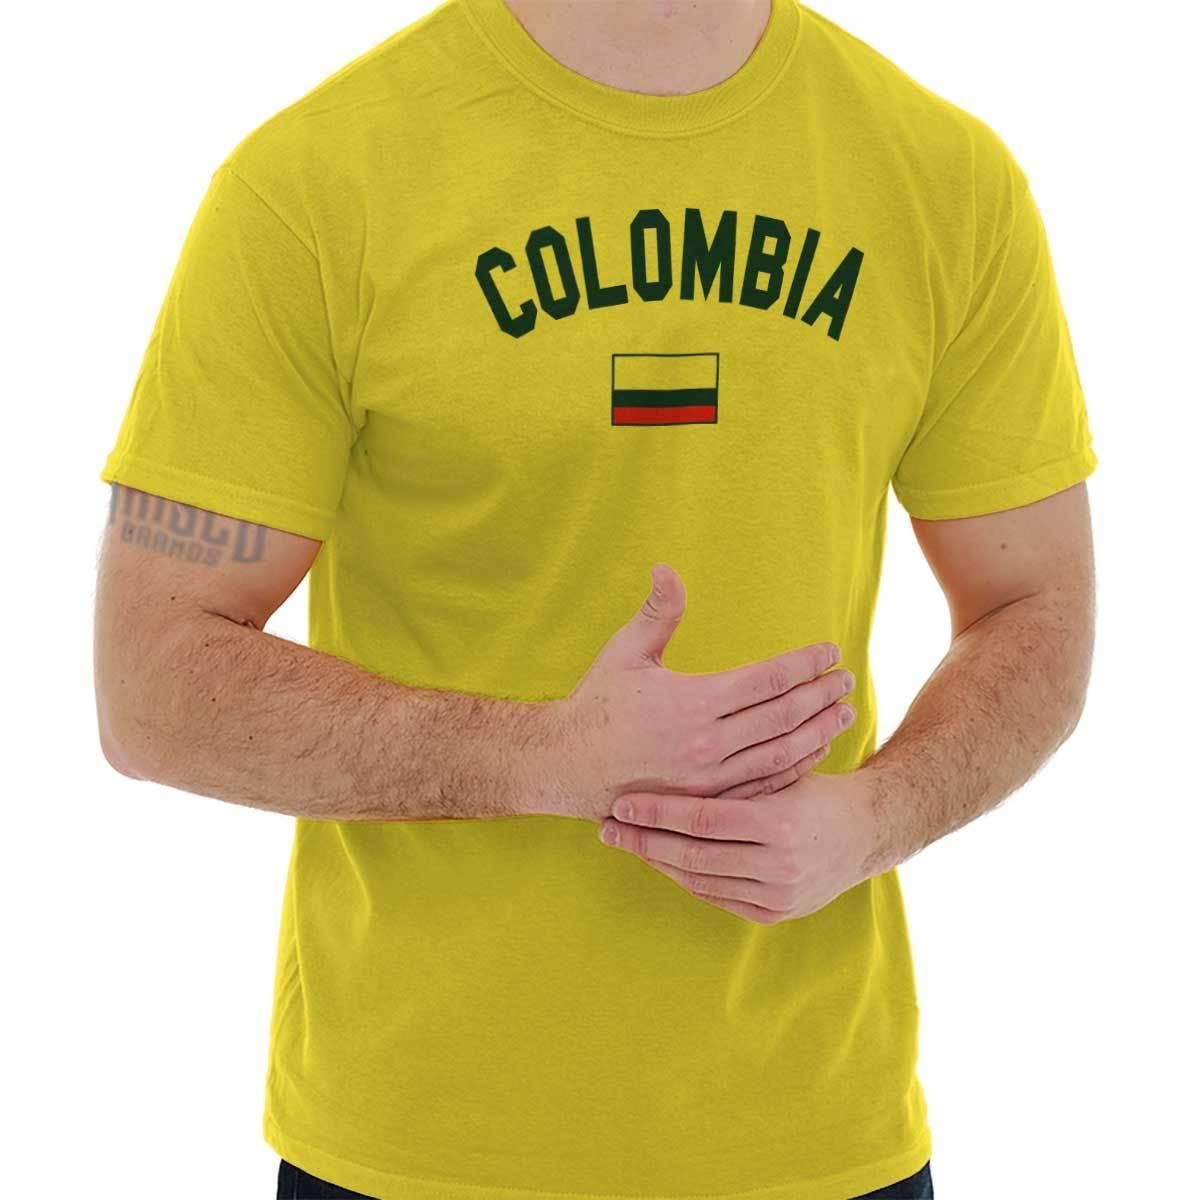 Details Zu Colombia Flag World Cup Soccer Colombian National Flag Pride T  Shirt Tee Funny Unisex Casual Gift Denim Shirts Design T Shirts From  Topclassa 6a539c8bf